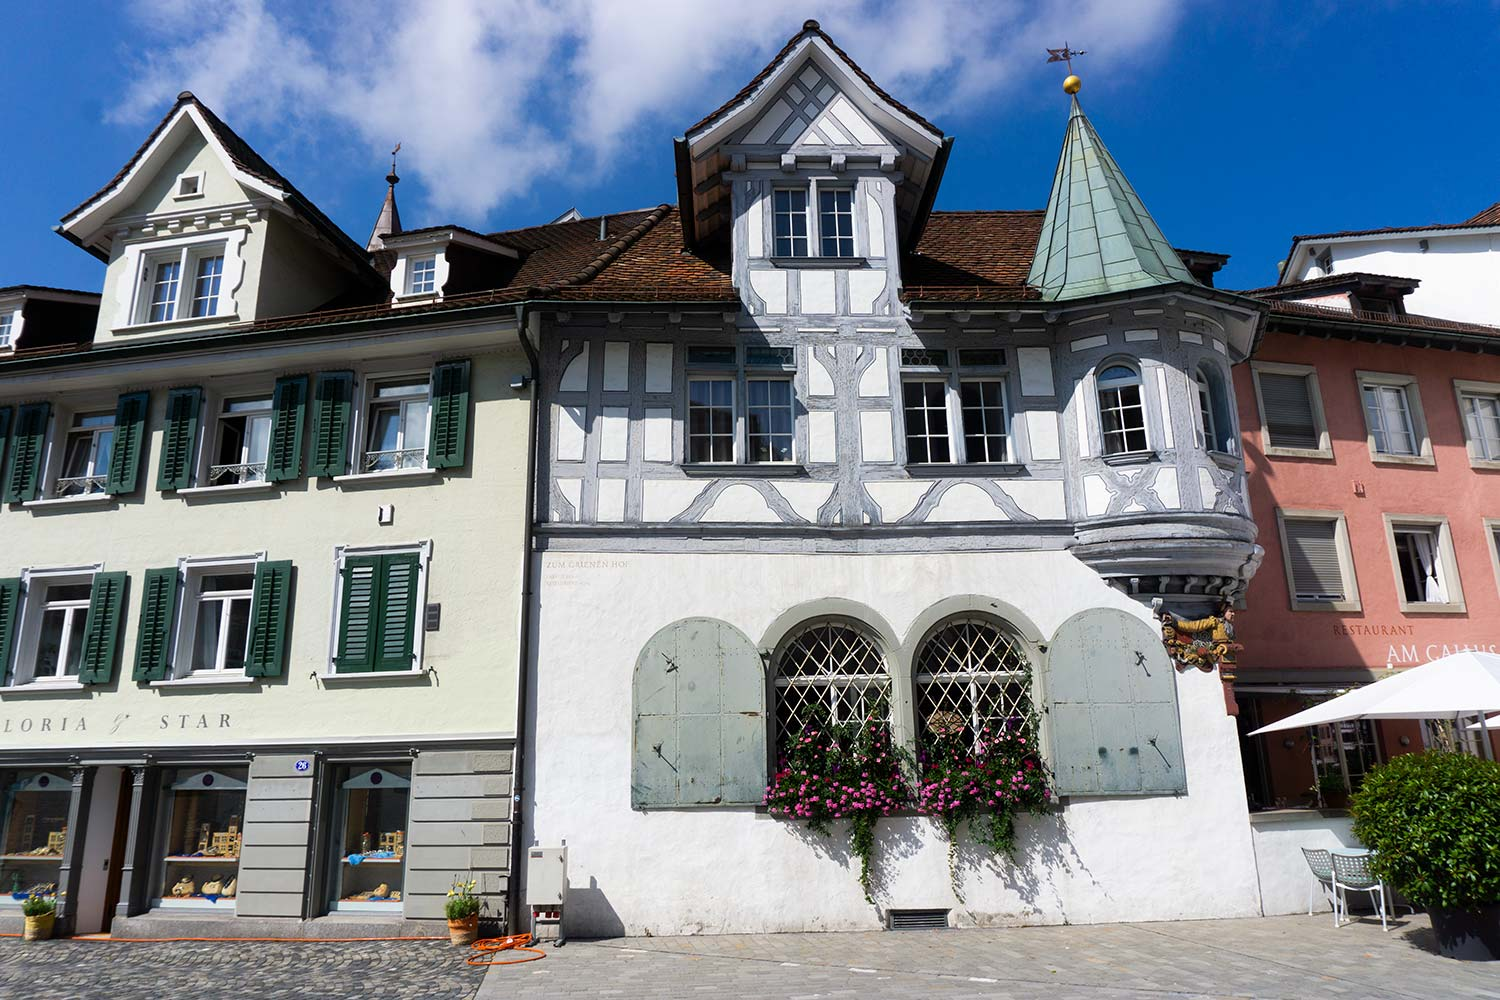 A cute white house with blue shutters in St. Gallen, Switzerland.